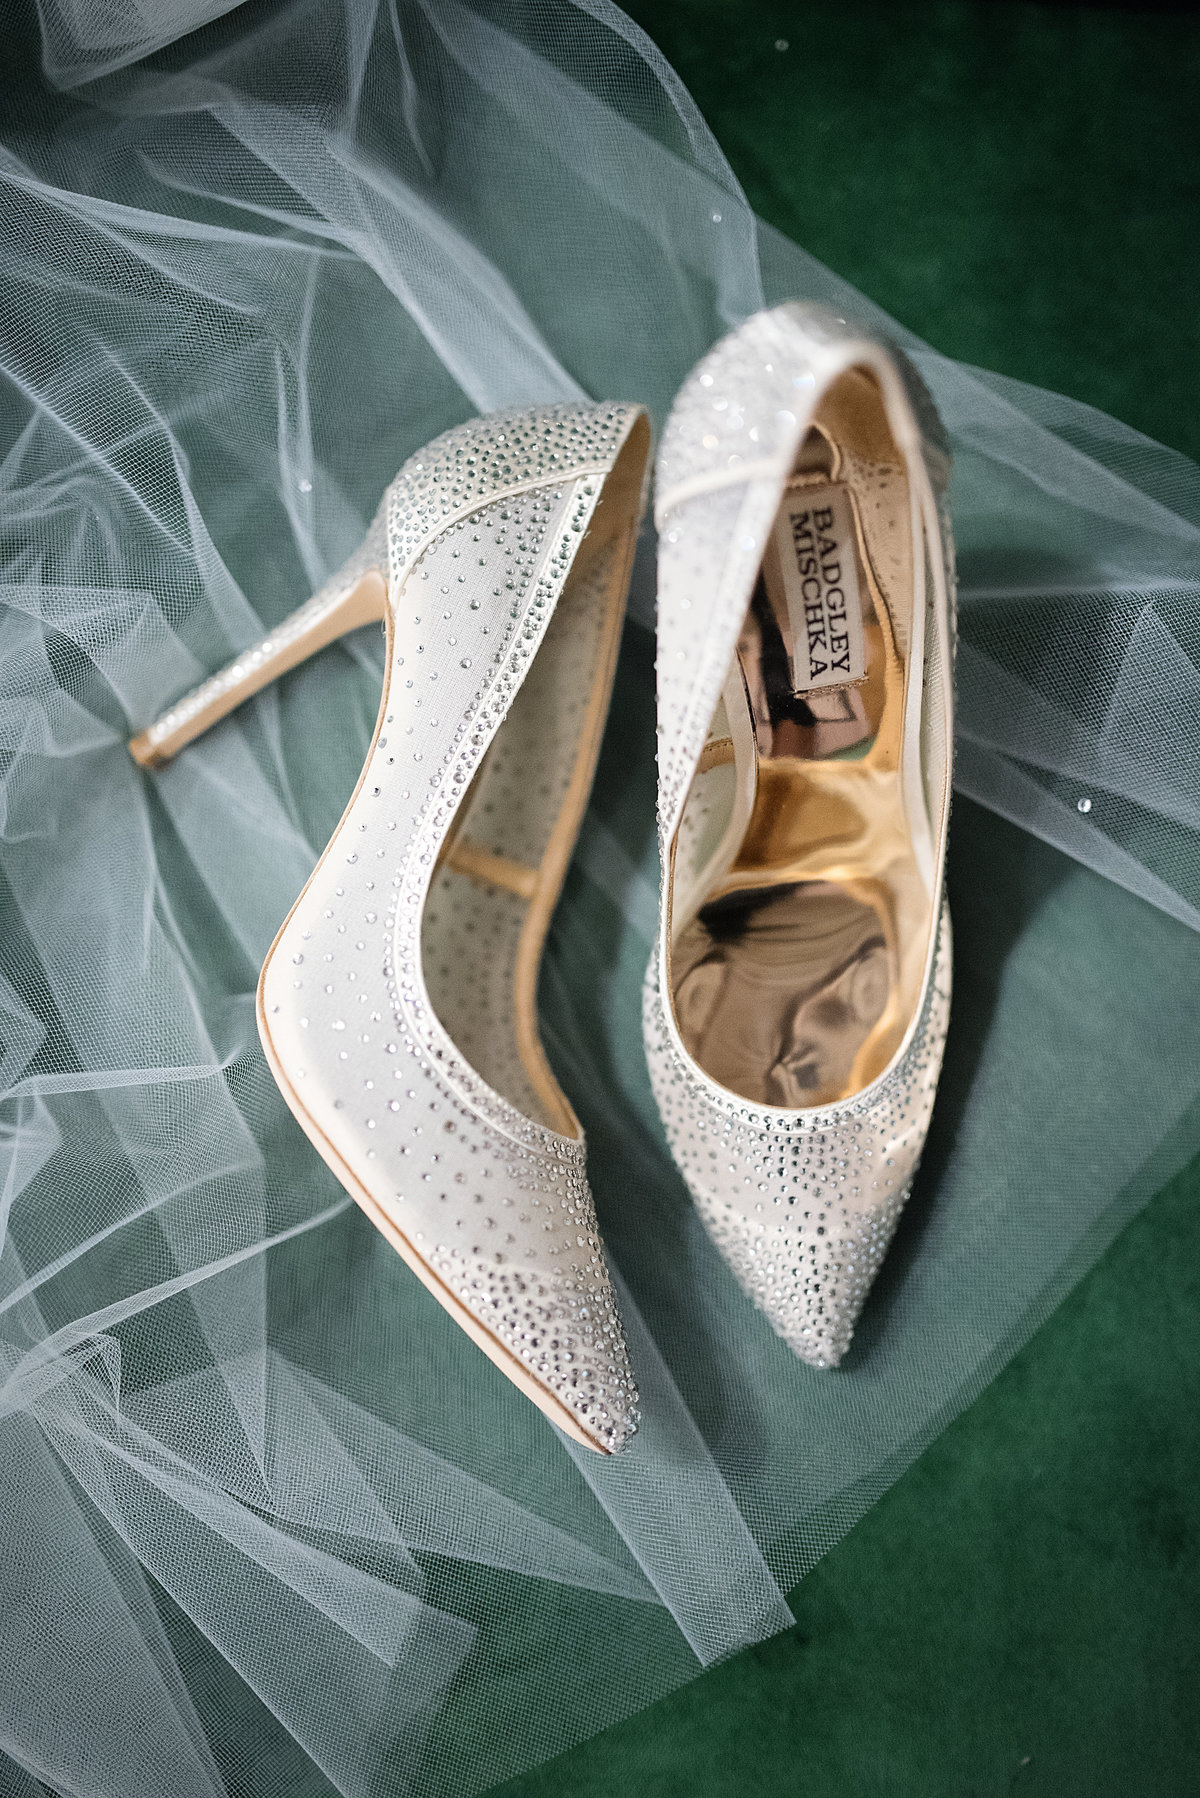 Badgley Mischka Closed toe Wedding Shoes